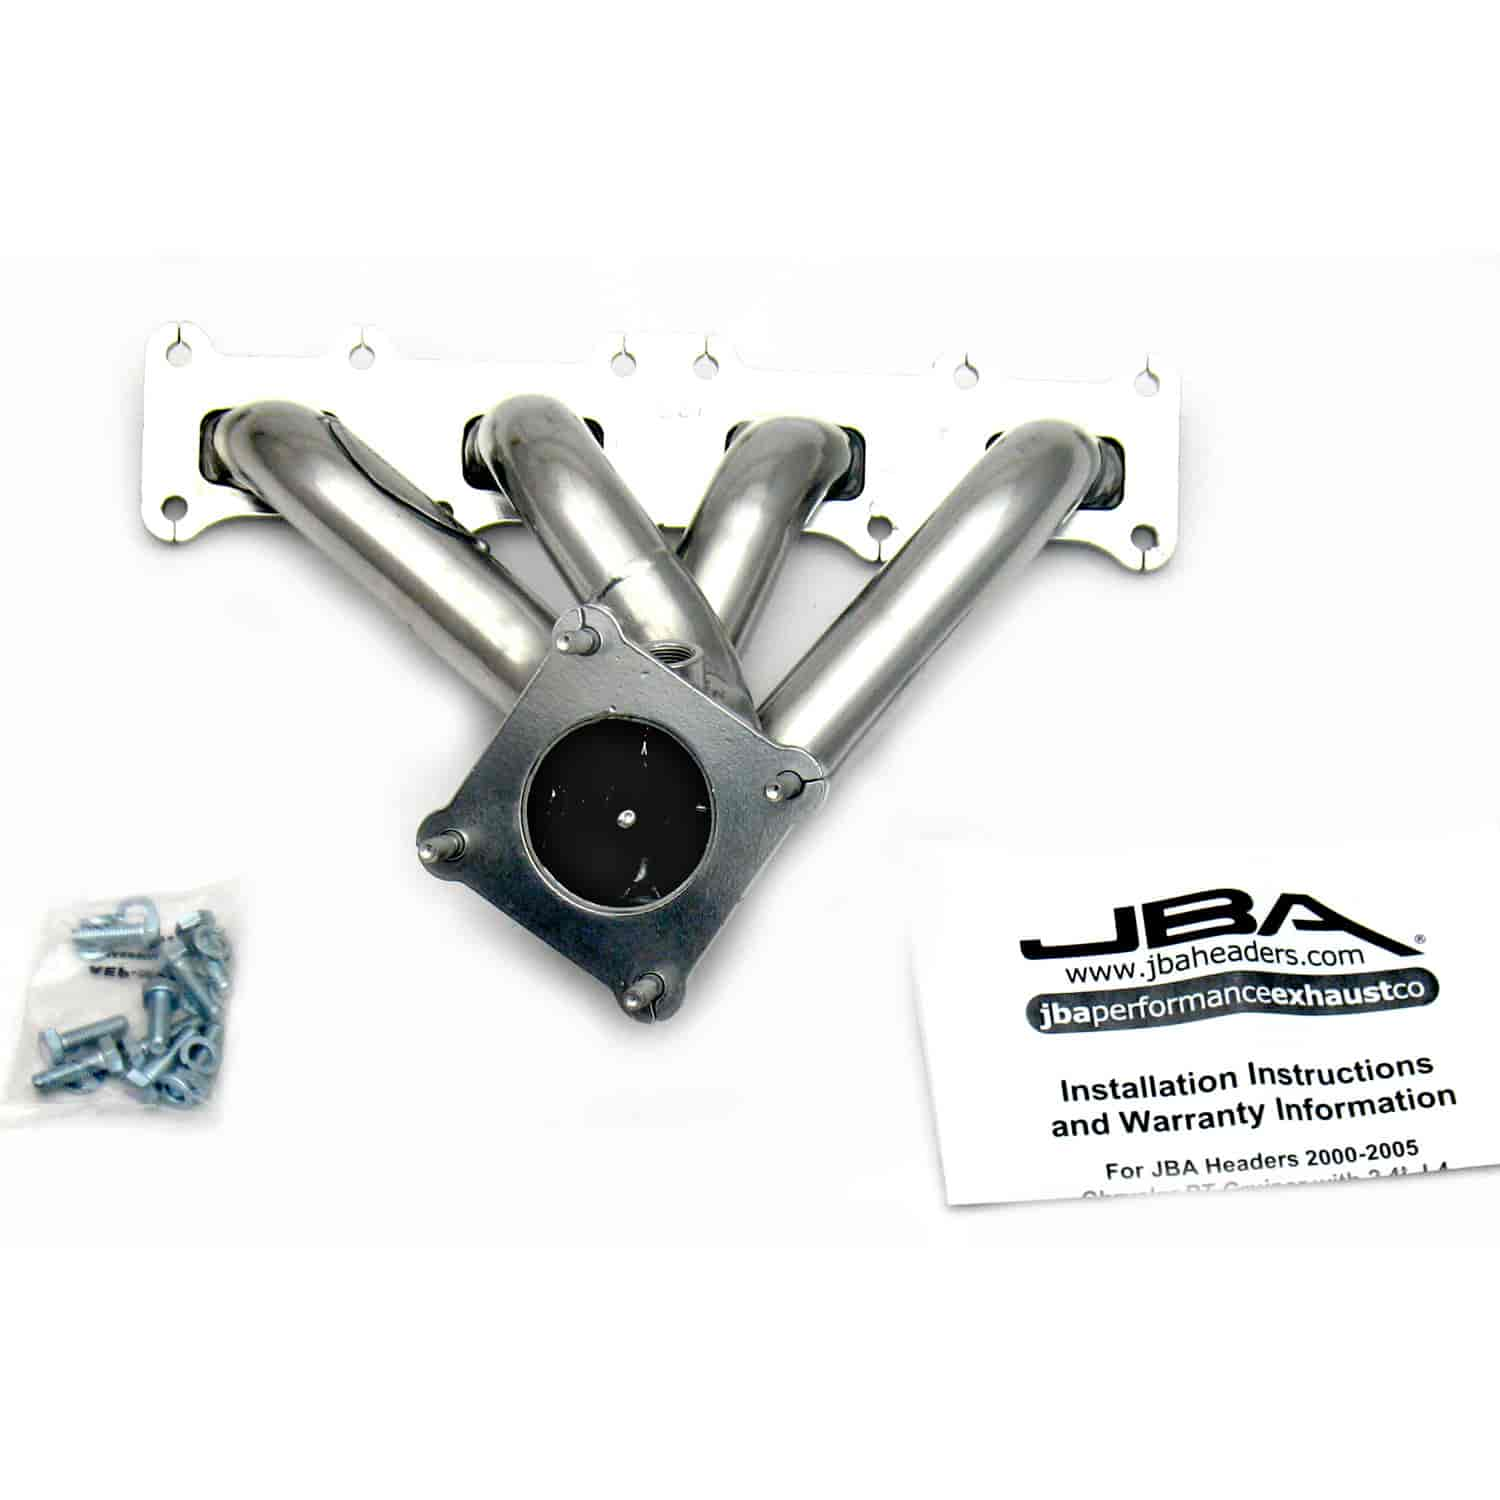 JBA 1937SJS - JBA Mopar Shorty Headers